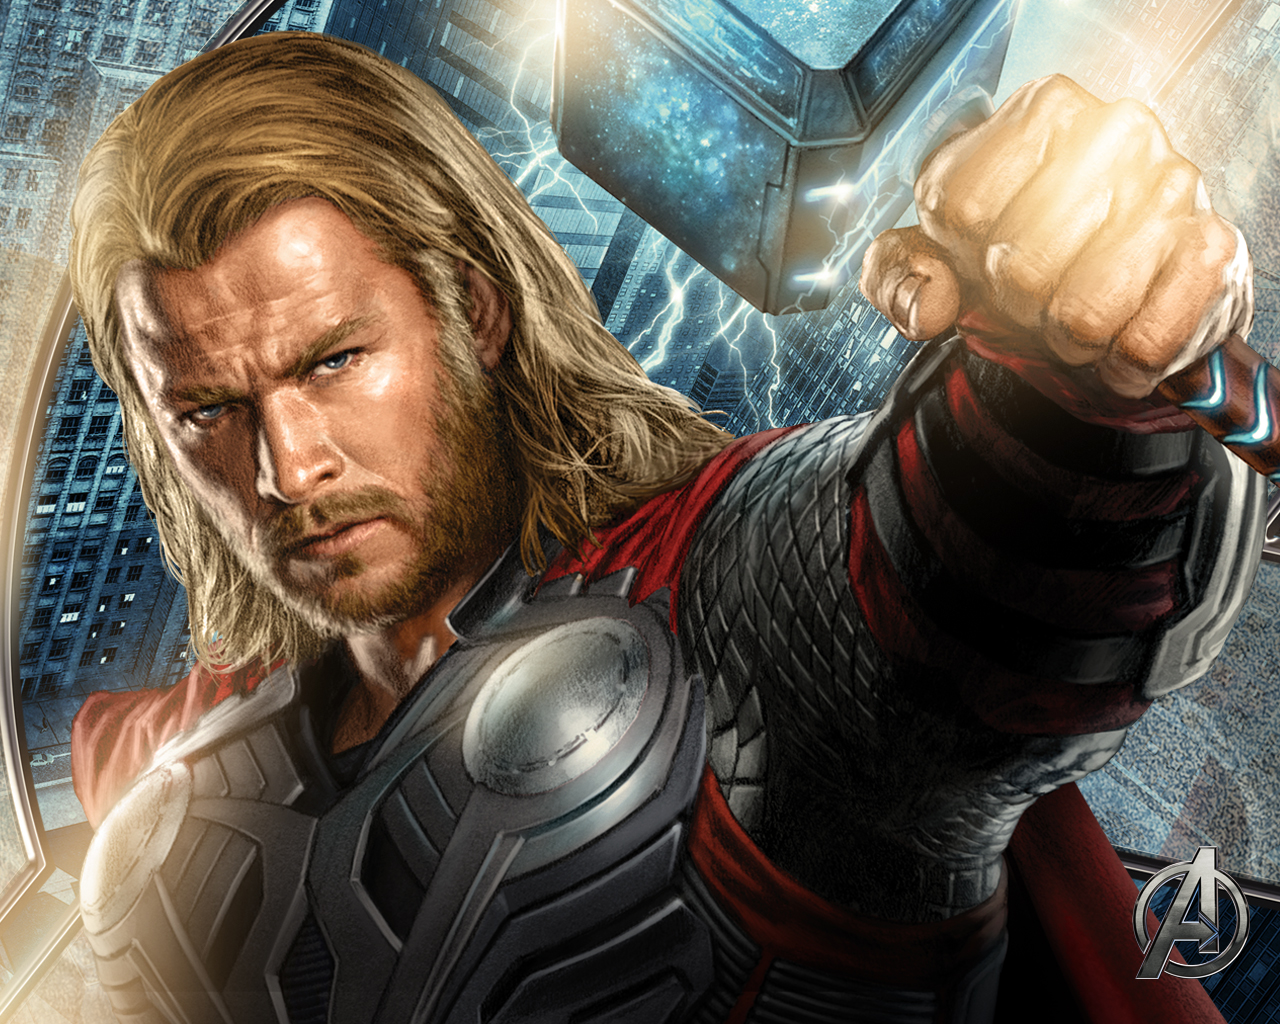 http://img4.wikia.nocookie.net/__cb20130617021304/ironman/images/6/64/Thor-Avengers.jpg